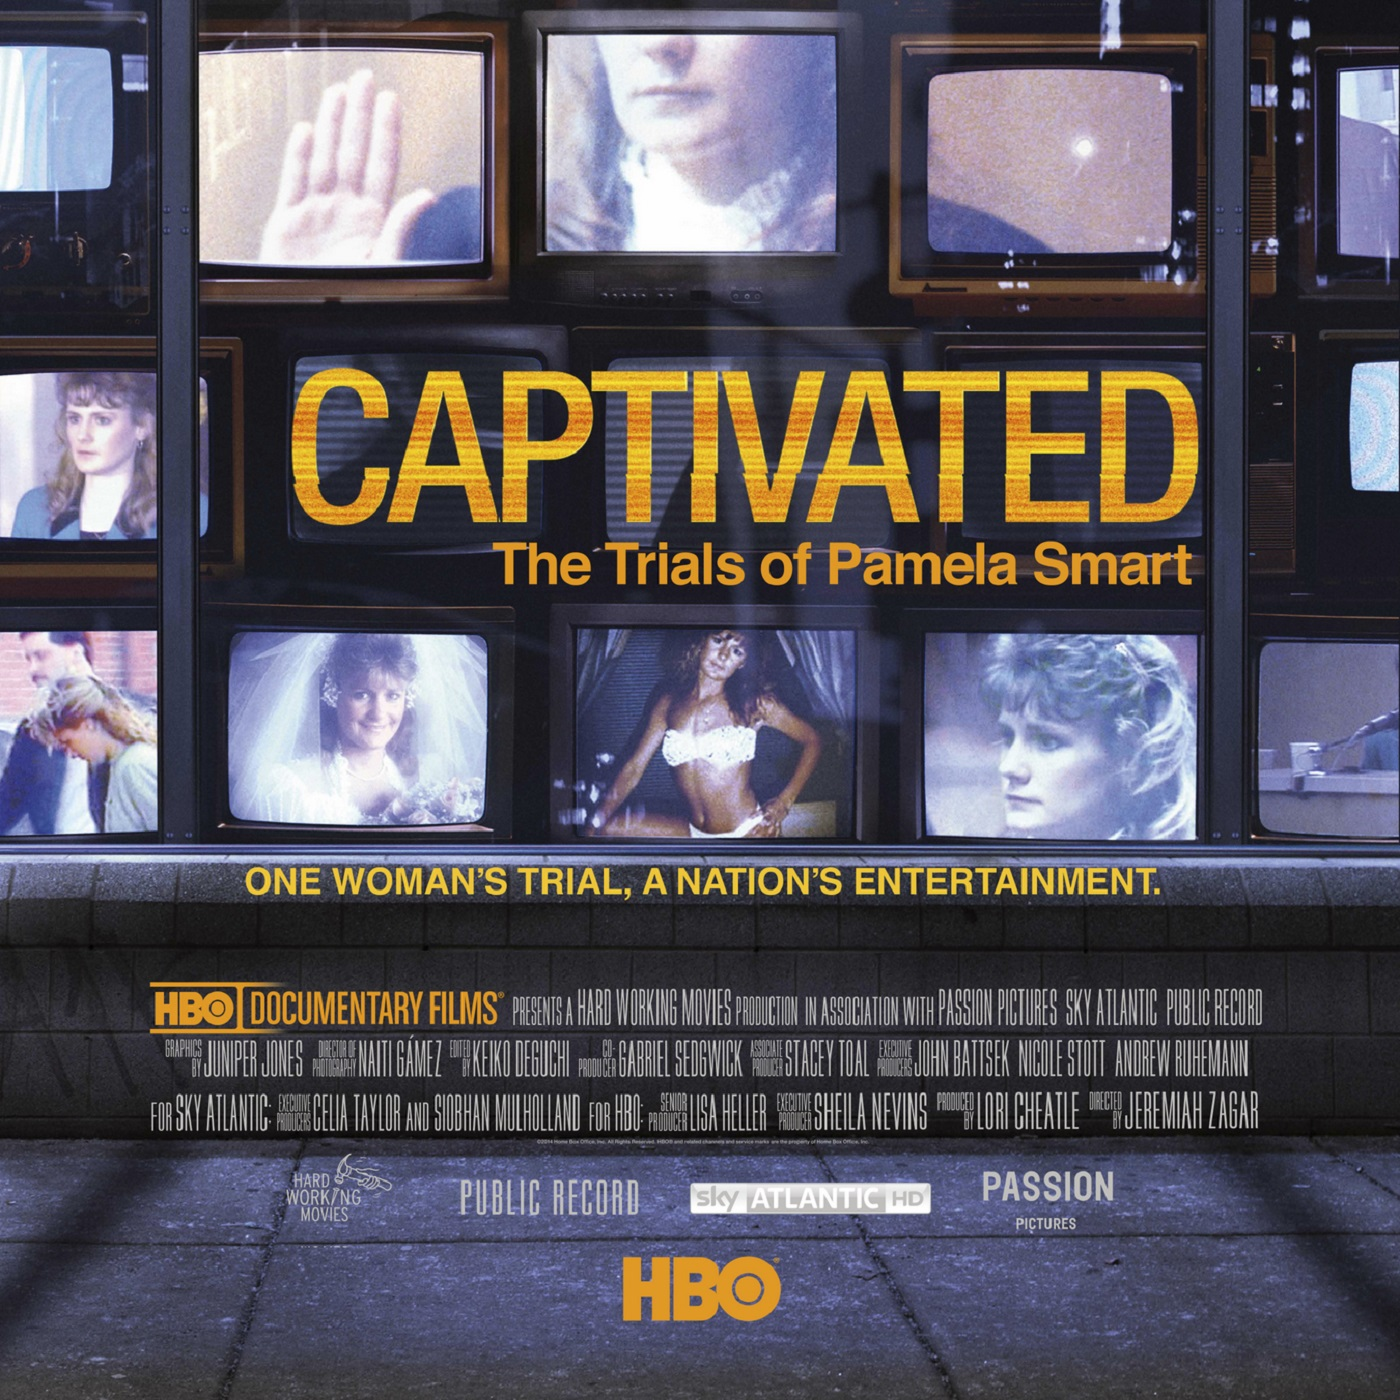 """STILL CAPTIVATED"" - extras for CAPTIVATED: The Trials of Pamela Smart"